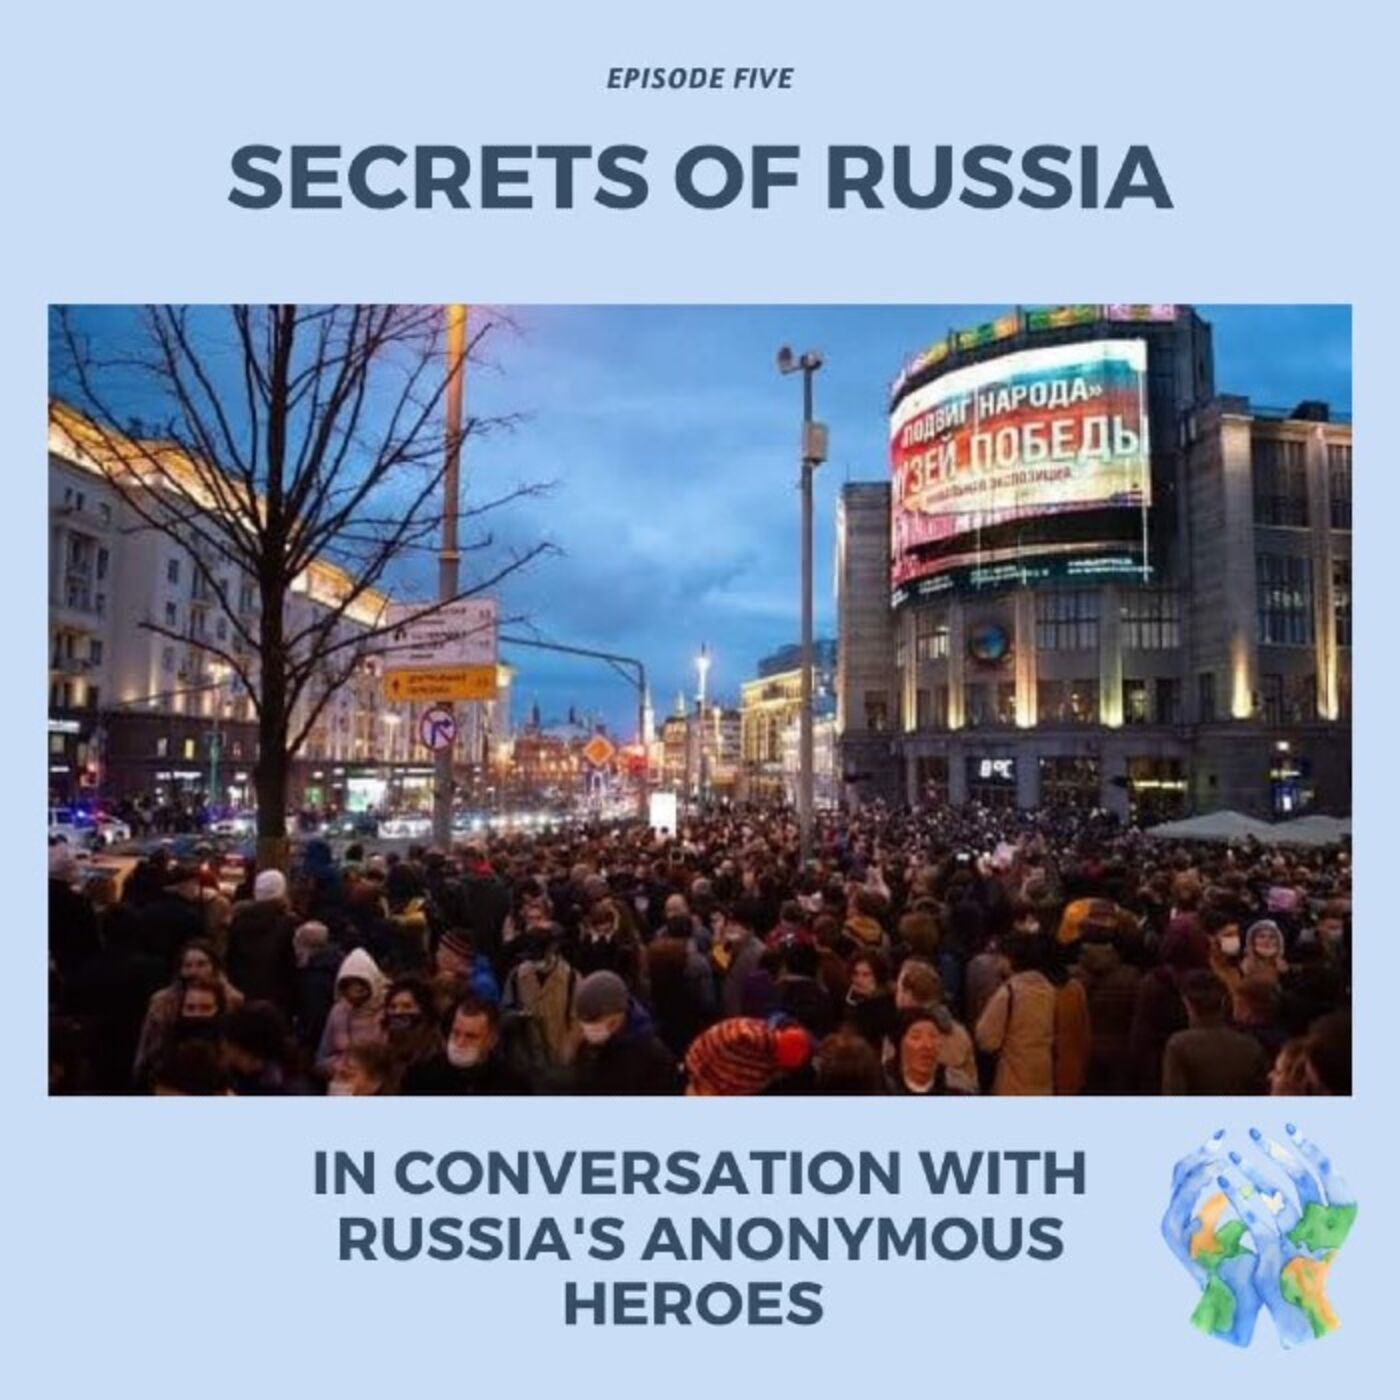 Secrets of Russia with Russia's Anonymous Heroes